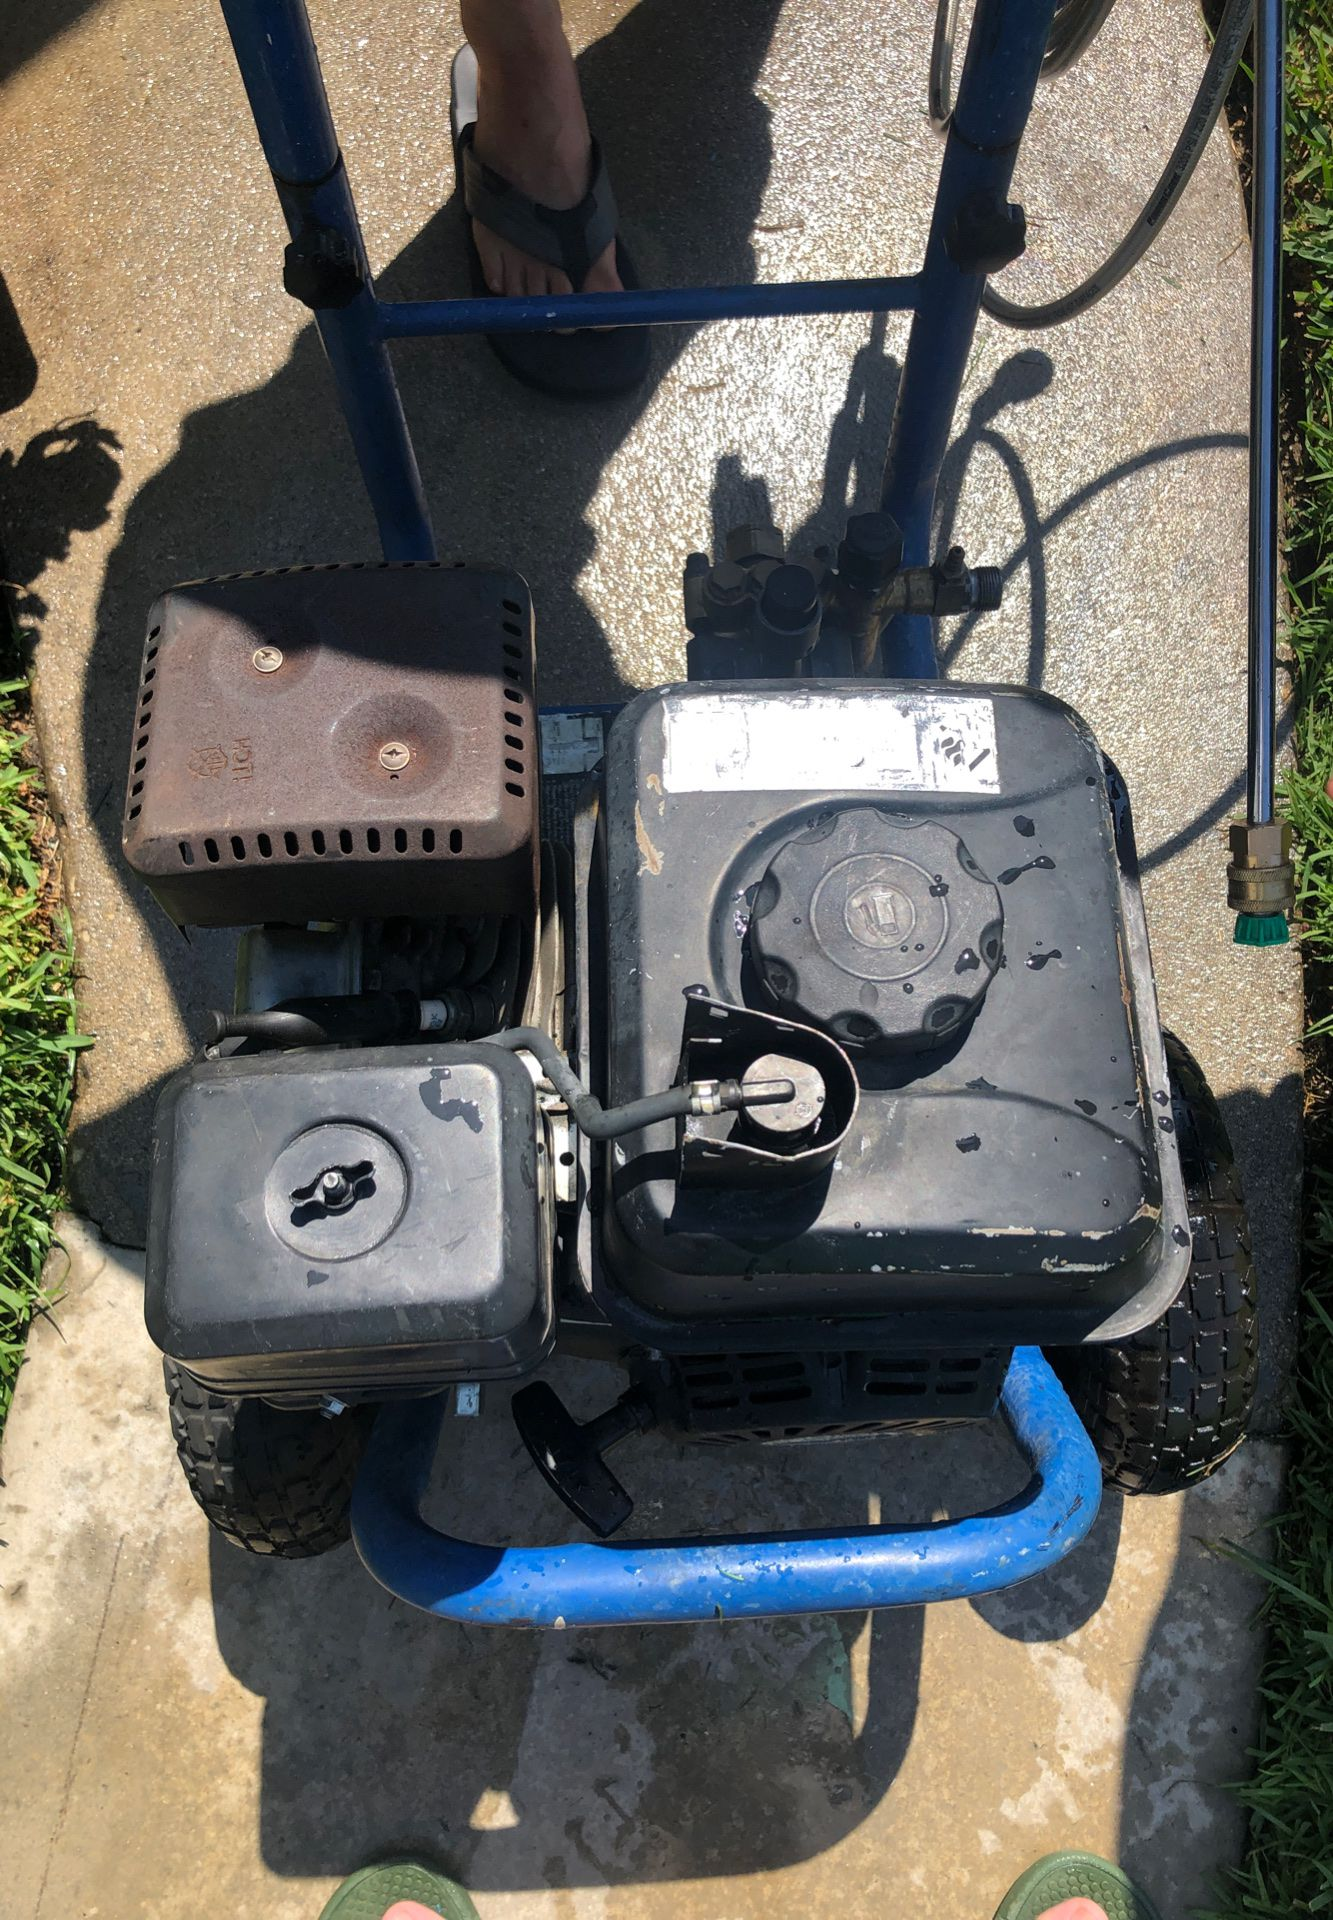 Pacific hydro star power washer